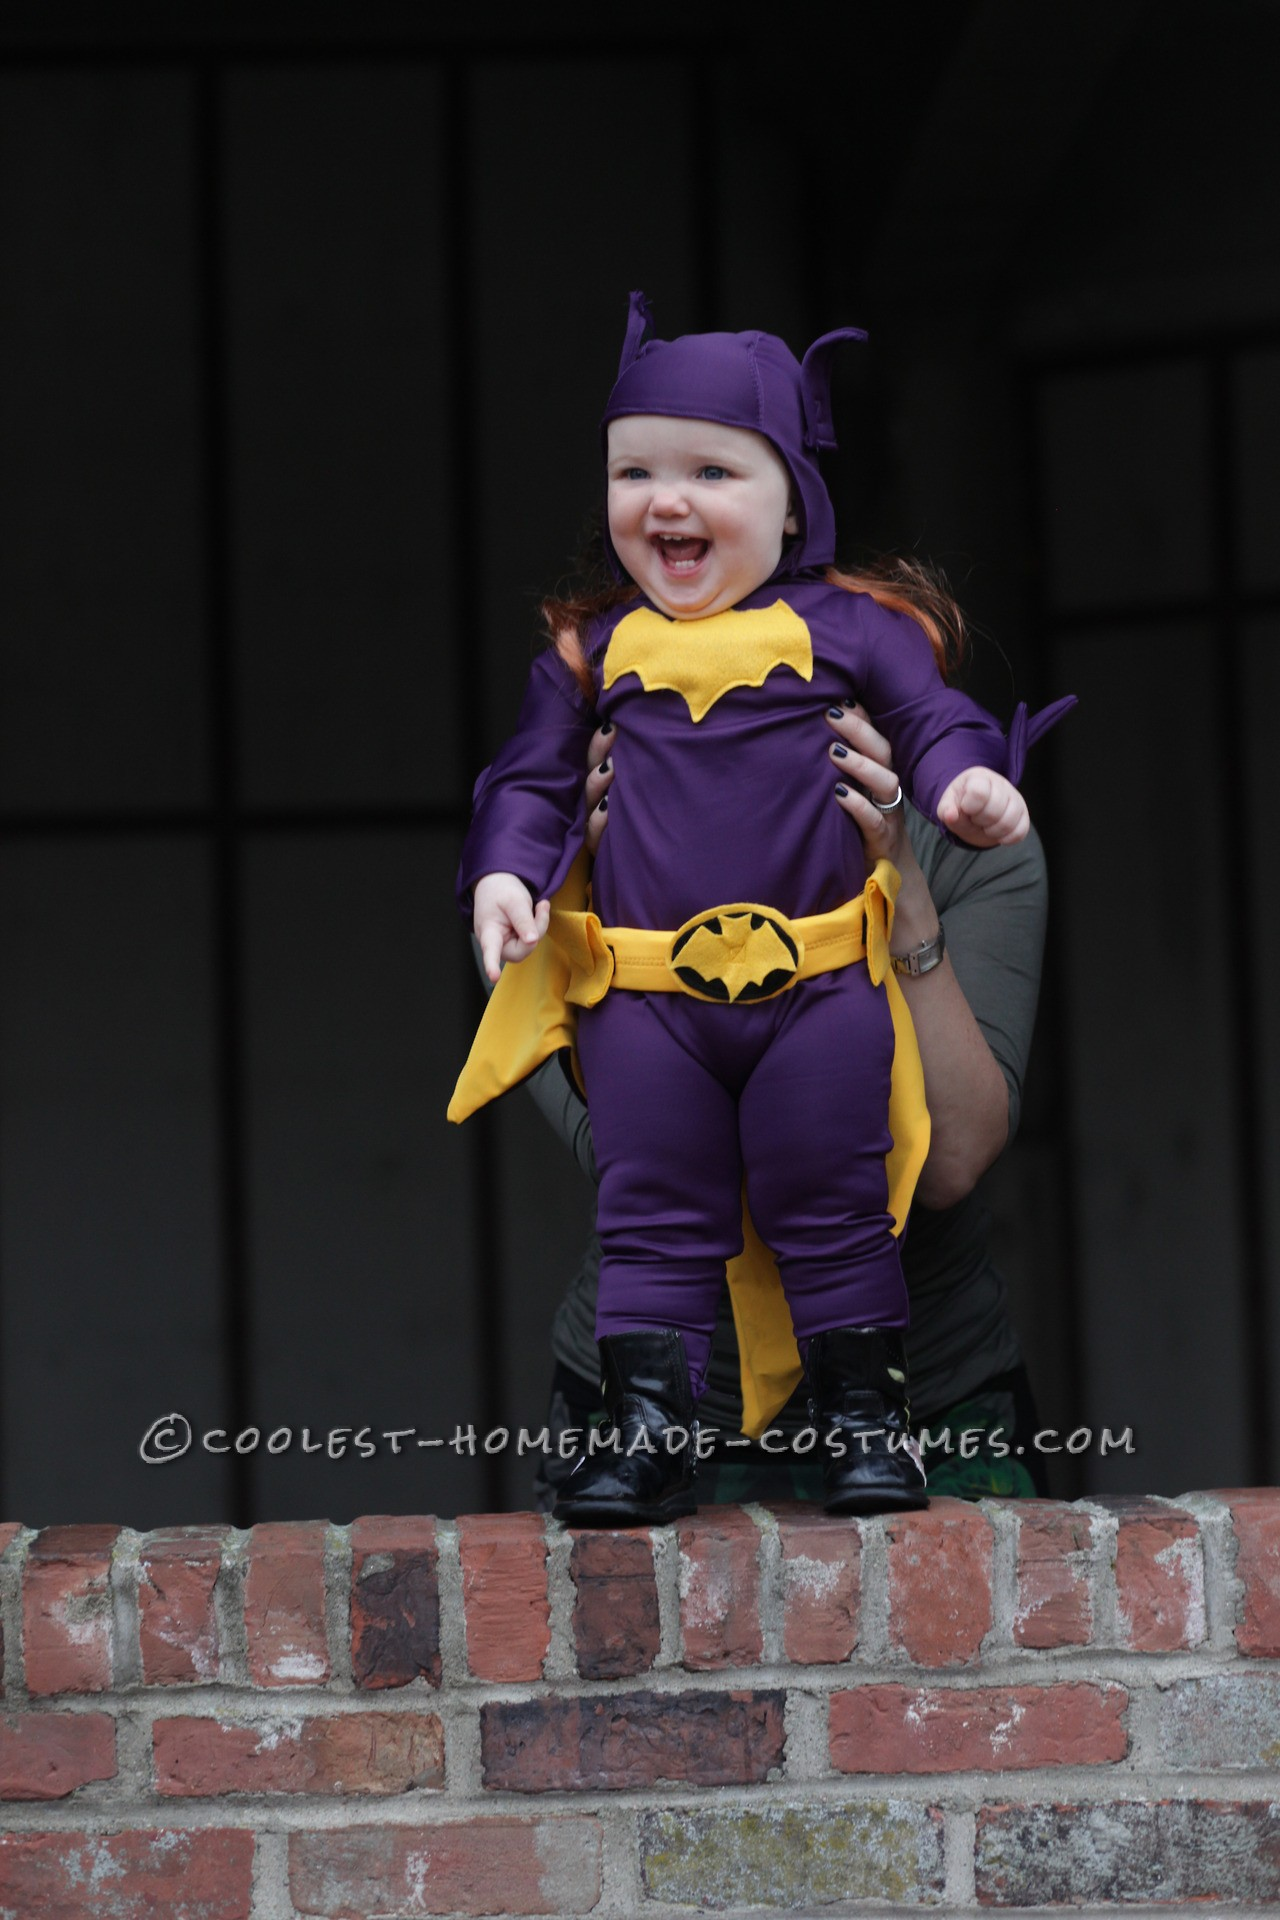 Cool 60's Era Baby Batgirl Costume